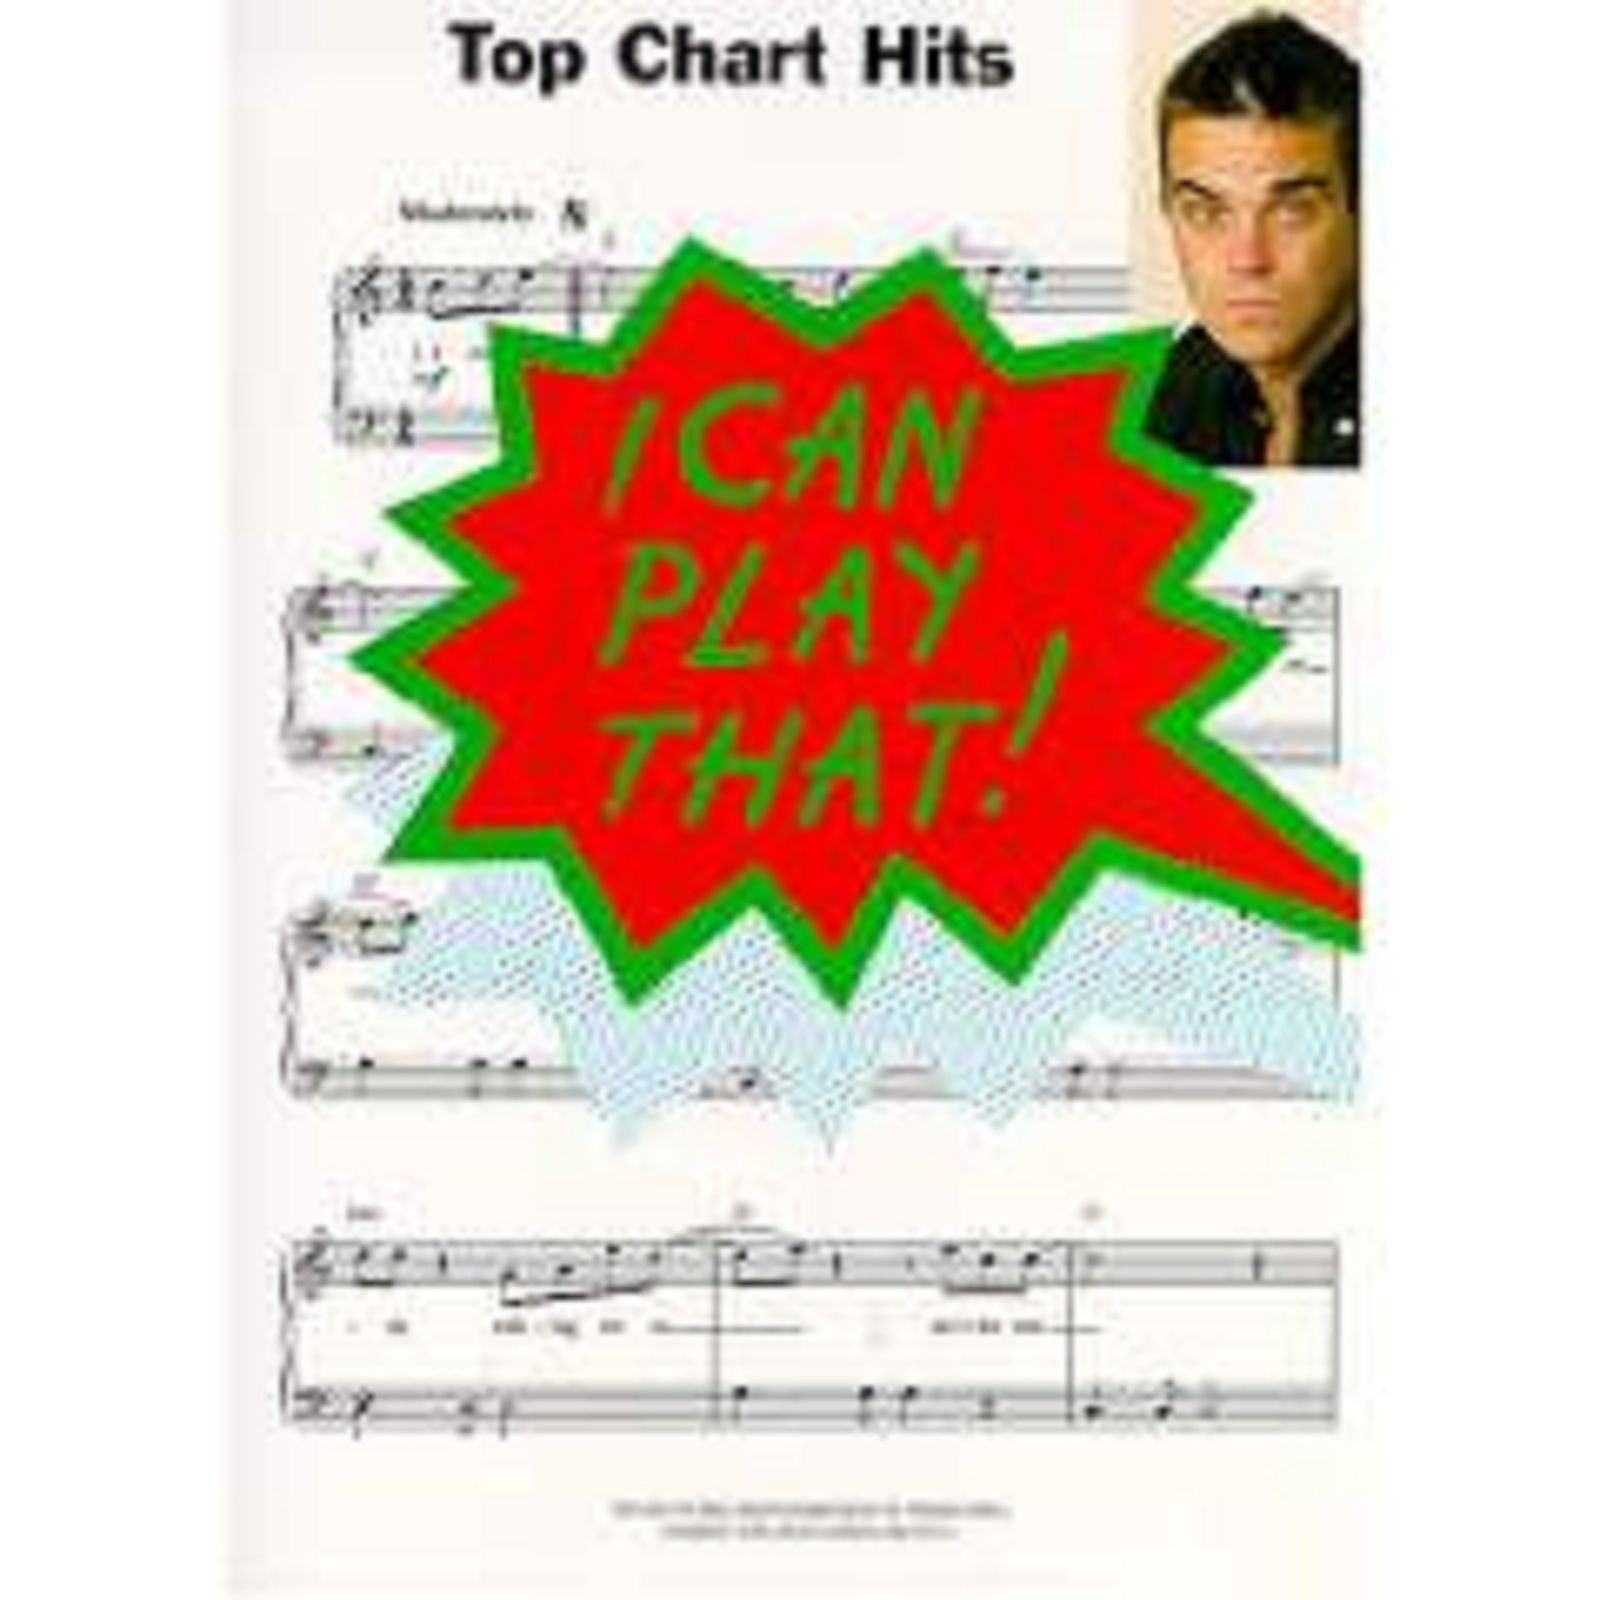 I Can Play That Top Chart Hits Easy Piano Sheet Music Songbook Nineties S10